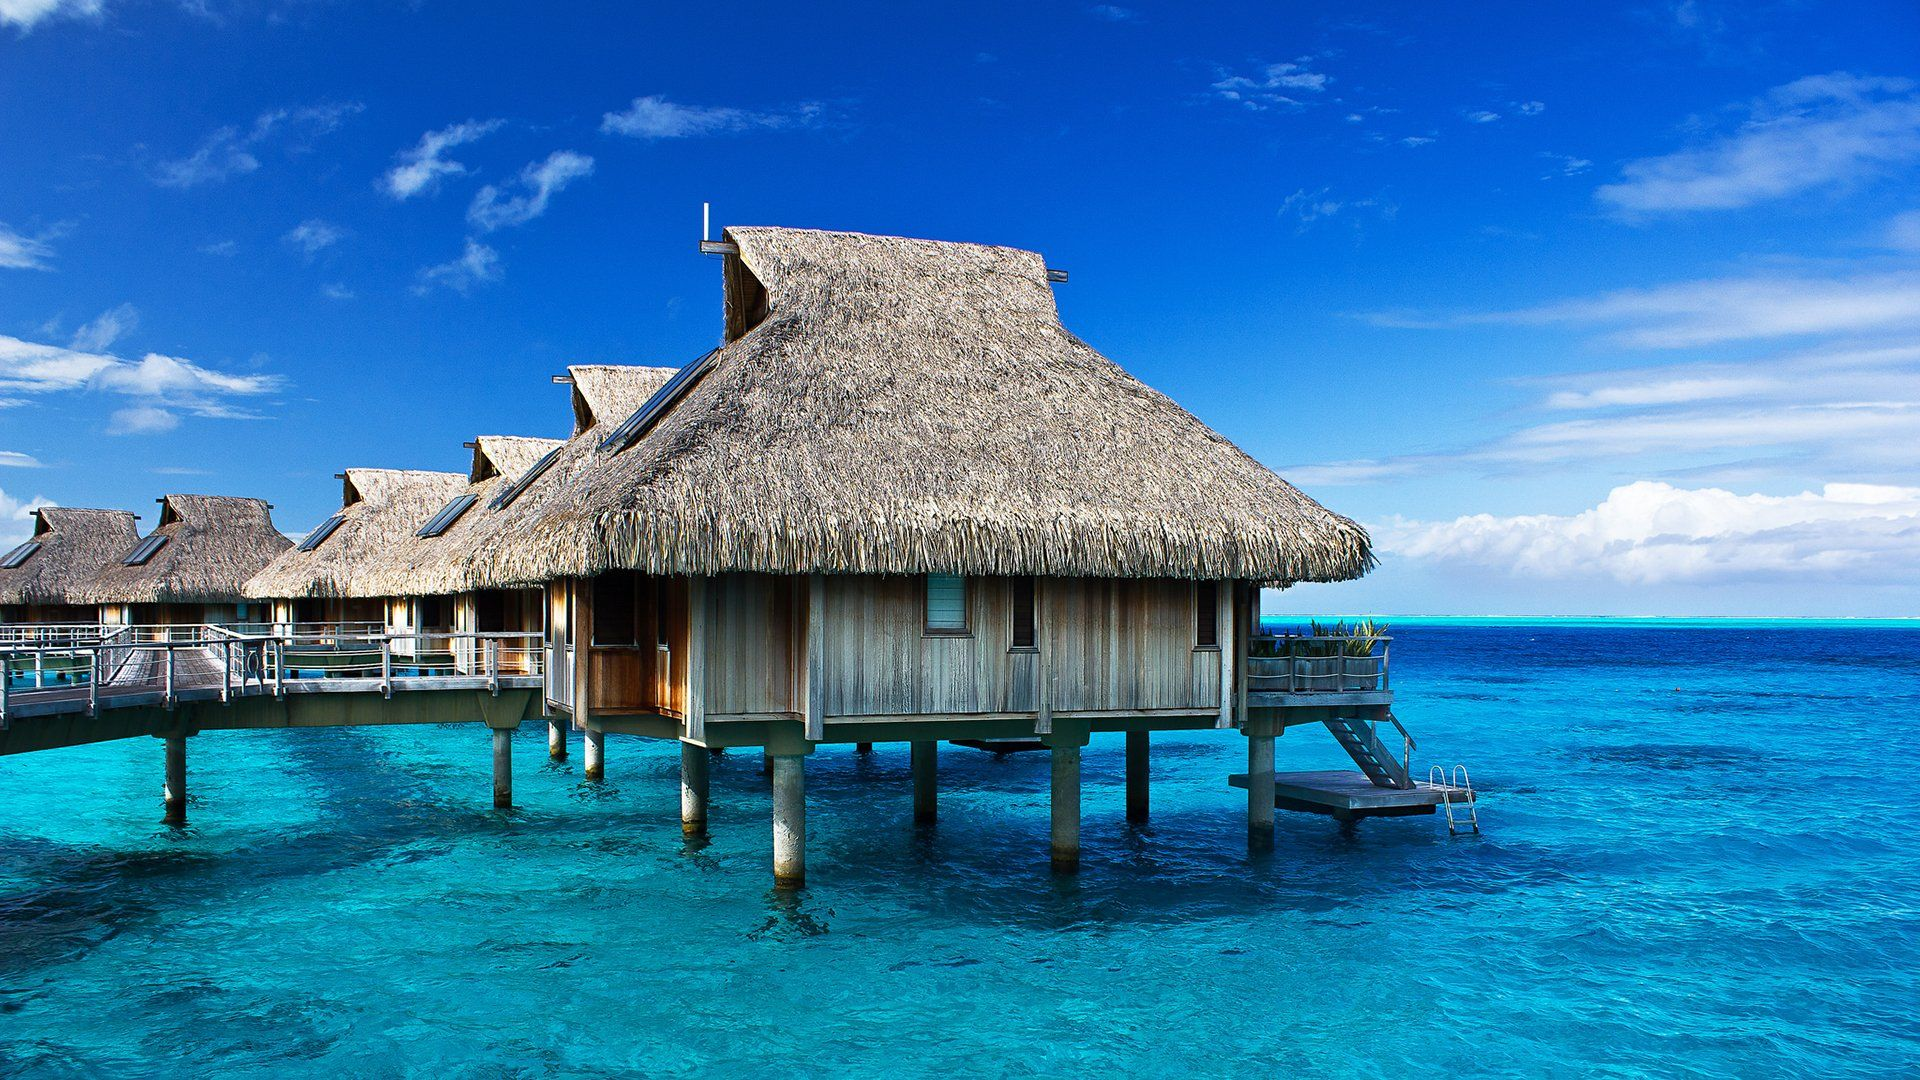 tropical resorts wallpaper background - photo #36